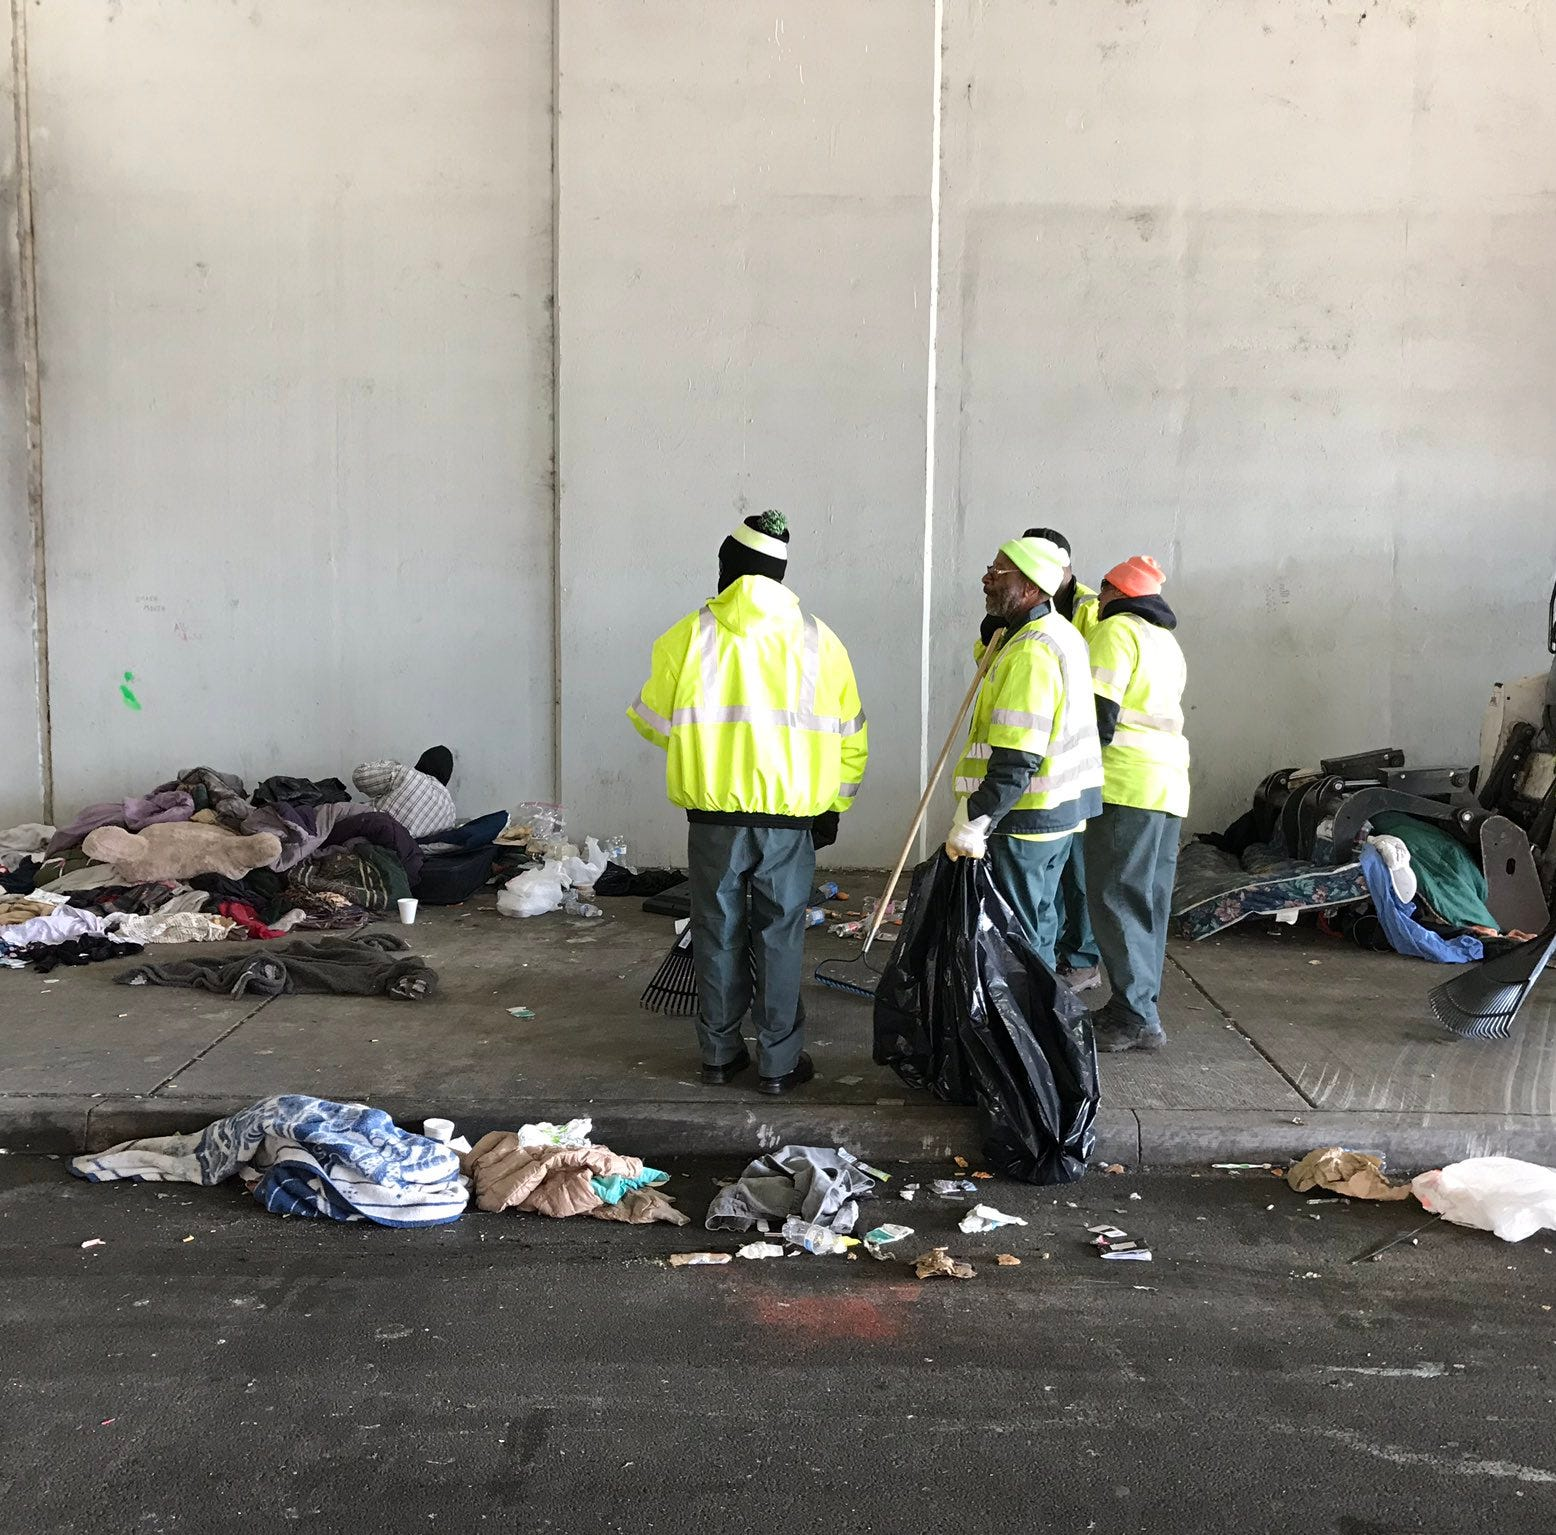 Homeless tent city in downtown Louisville is being cleared out